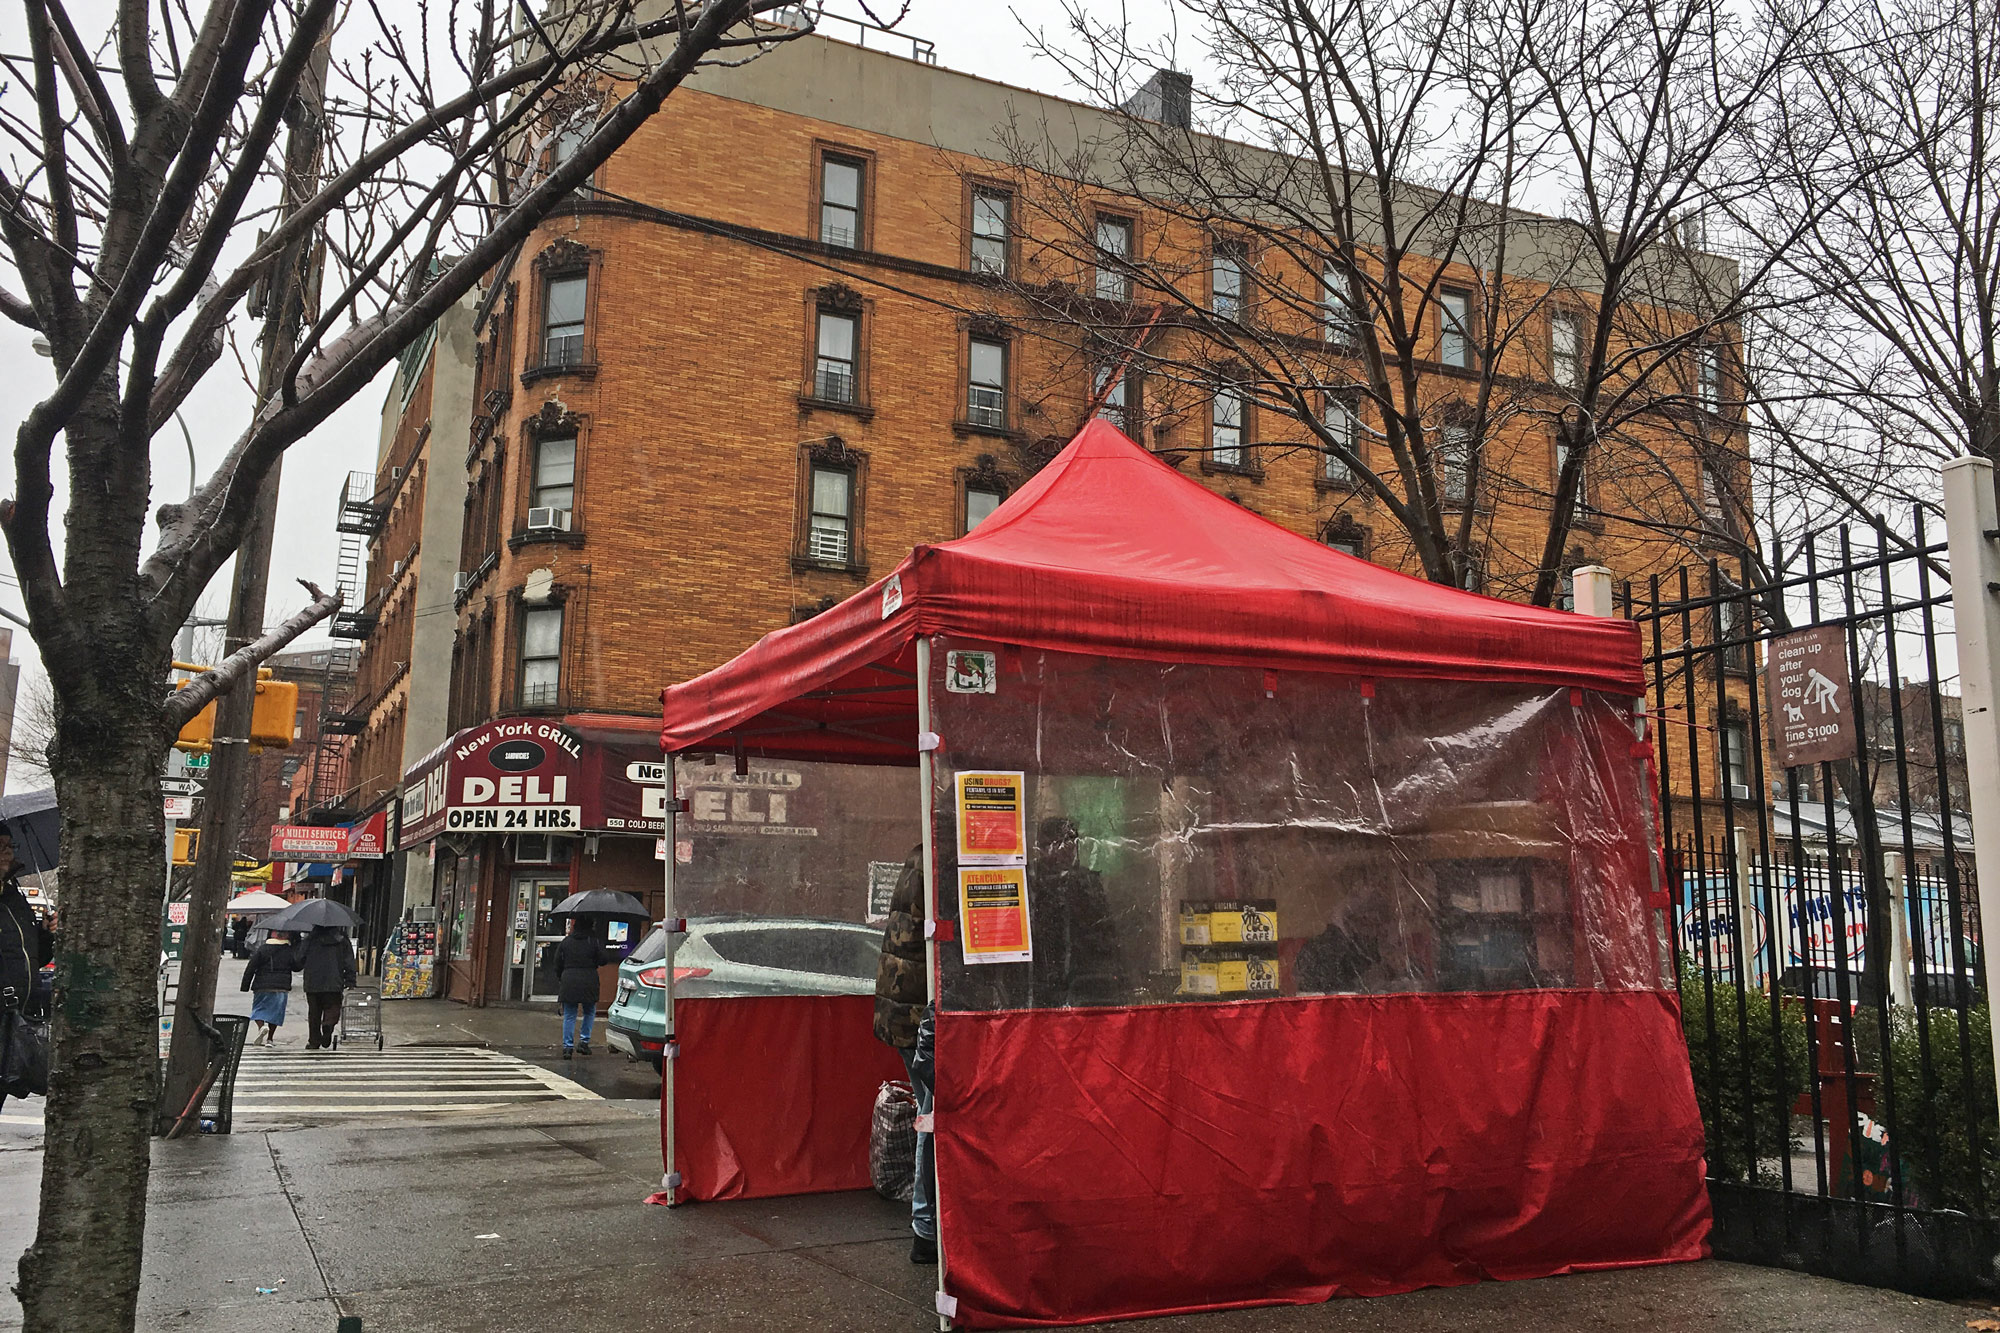 St. Ann's Corner has pitched tents on 139th Street in New York since the 1990s. (Photo by Michael O'Brien/GroundTruth)